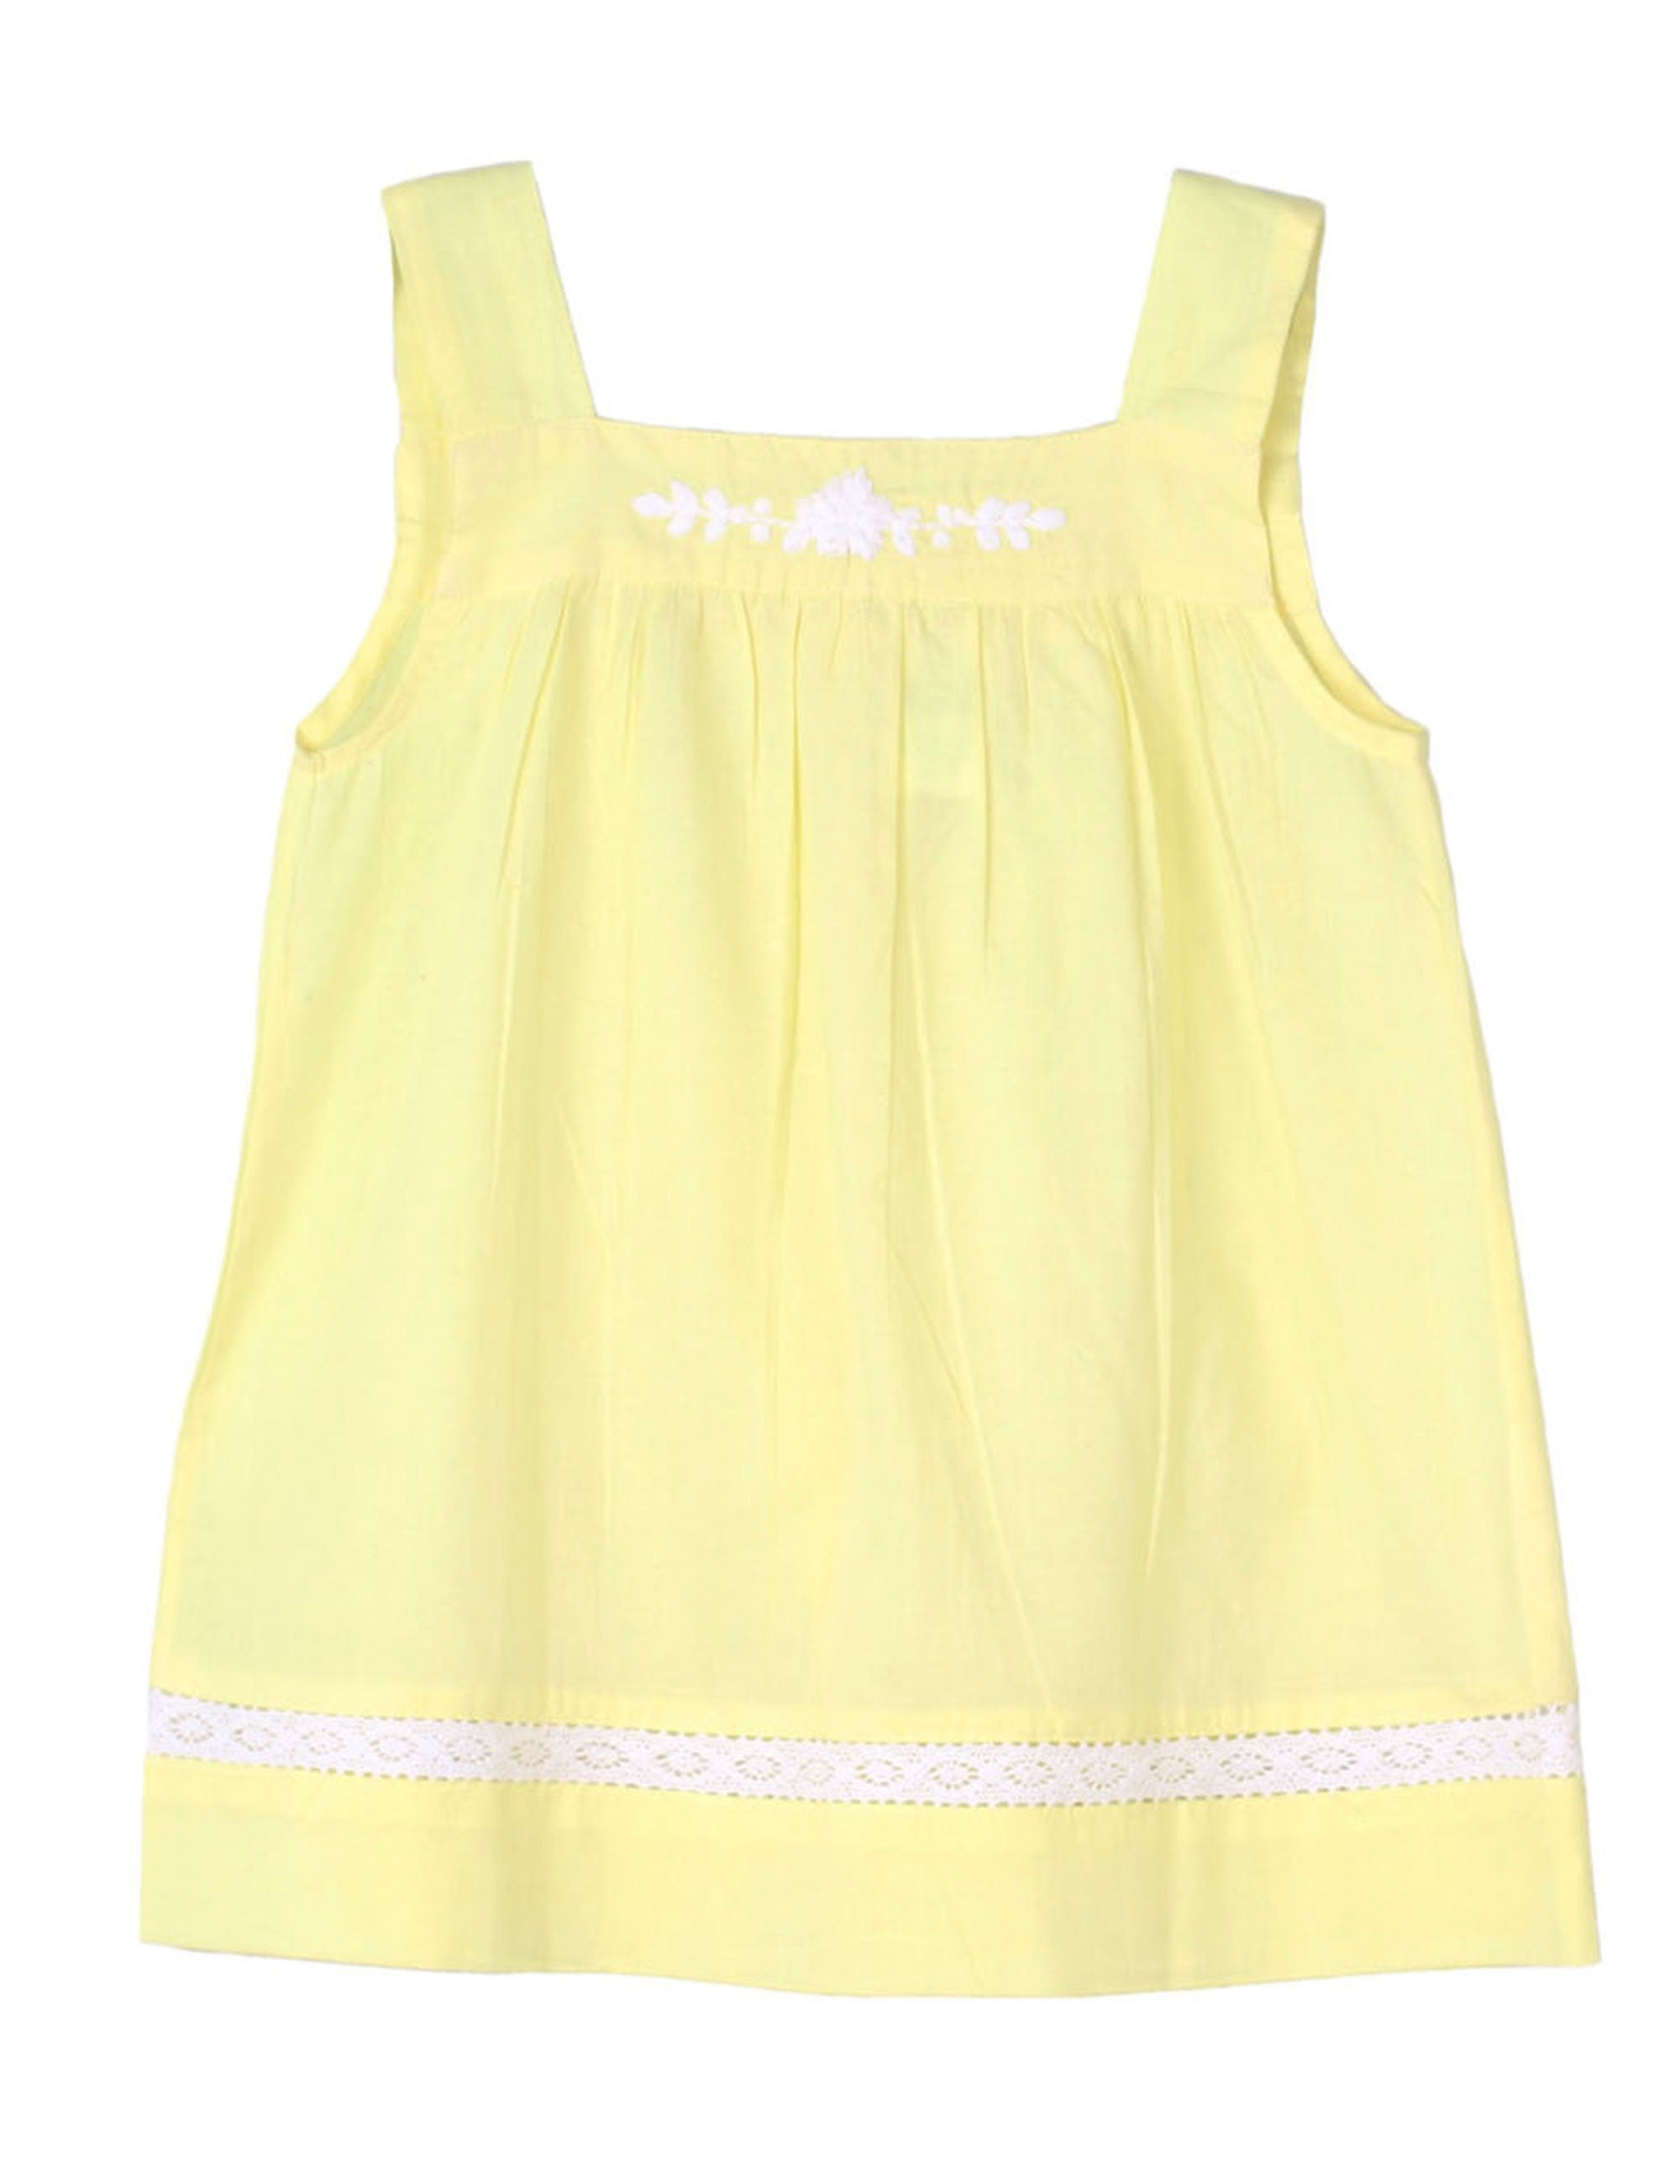 7743226869d Embroidered Solid Top with Lace in Yellow for Girls